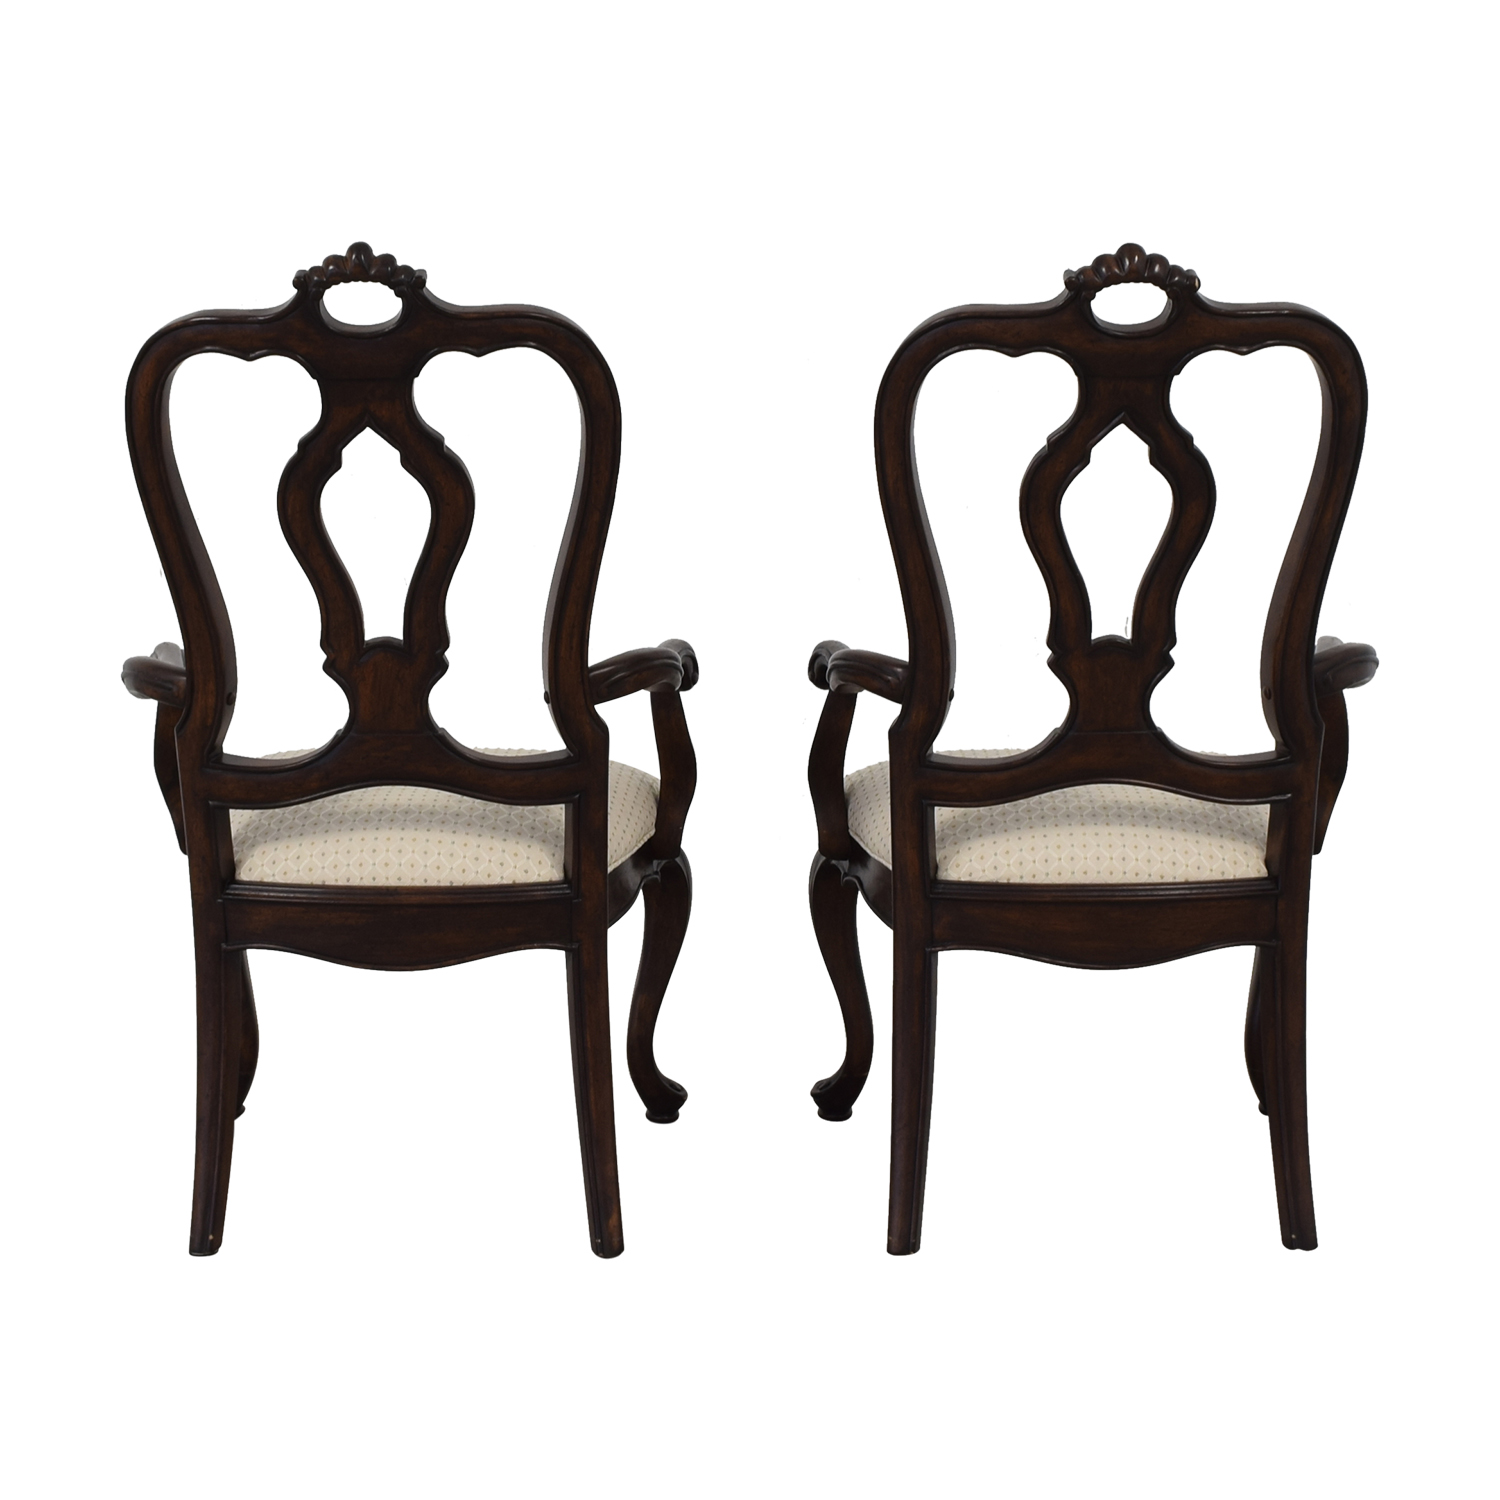 Thomasville Thomasville San Martino Dining Arm Chairs coupon